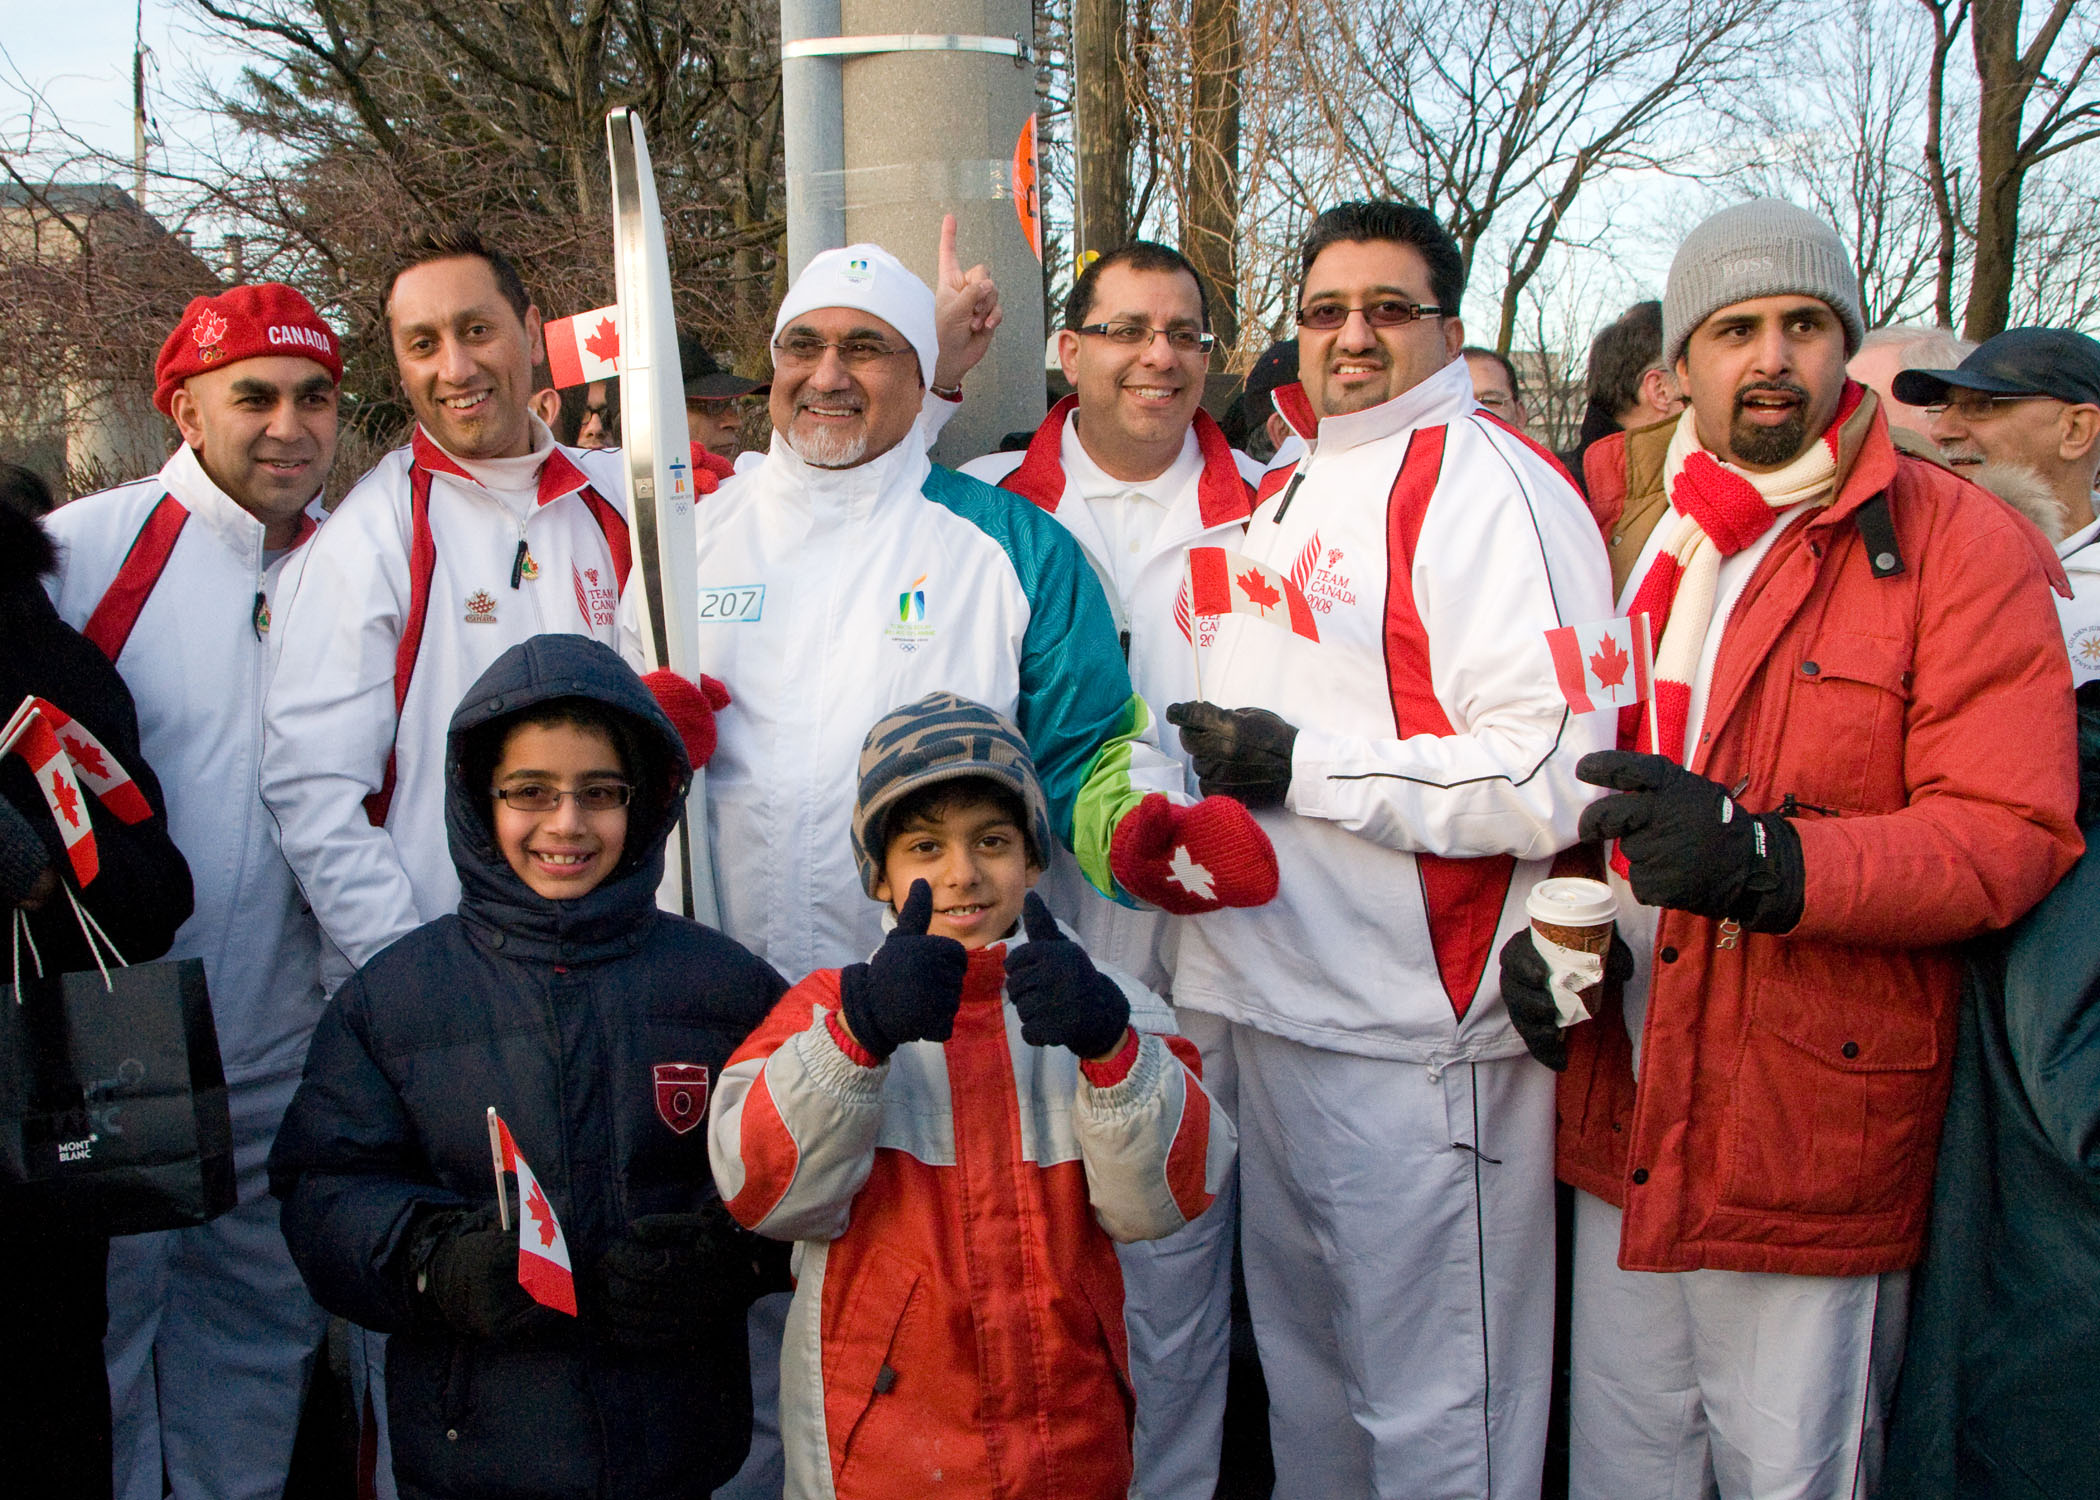 Olympic Torch-Bearer, President Mohamed Manji, is surrounded by athletes who competed in the Canadian Ismaili Games in Vancouver and the Golden Jubilee Games in Nairobi. Held in 2008, both Games emphasised about the pursuit of excellence and unity amongst peoples. Photo: Moez Visram